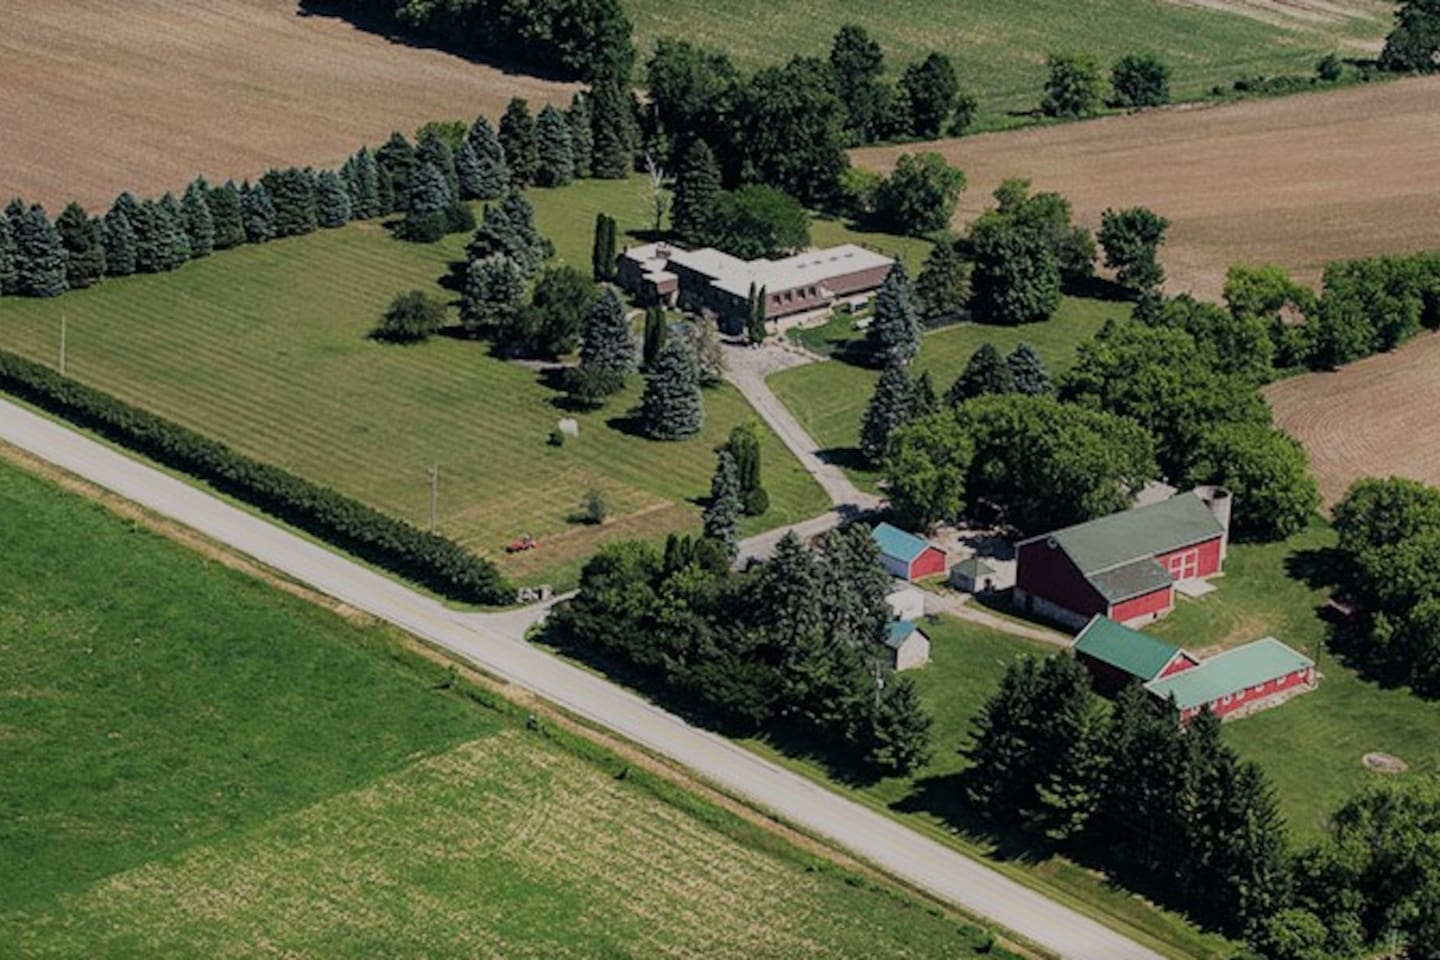 Aerial view of Old Stone House Farm's 8-1/2 acres